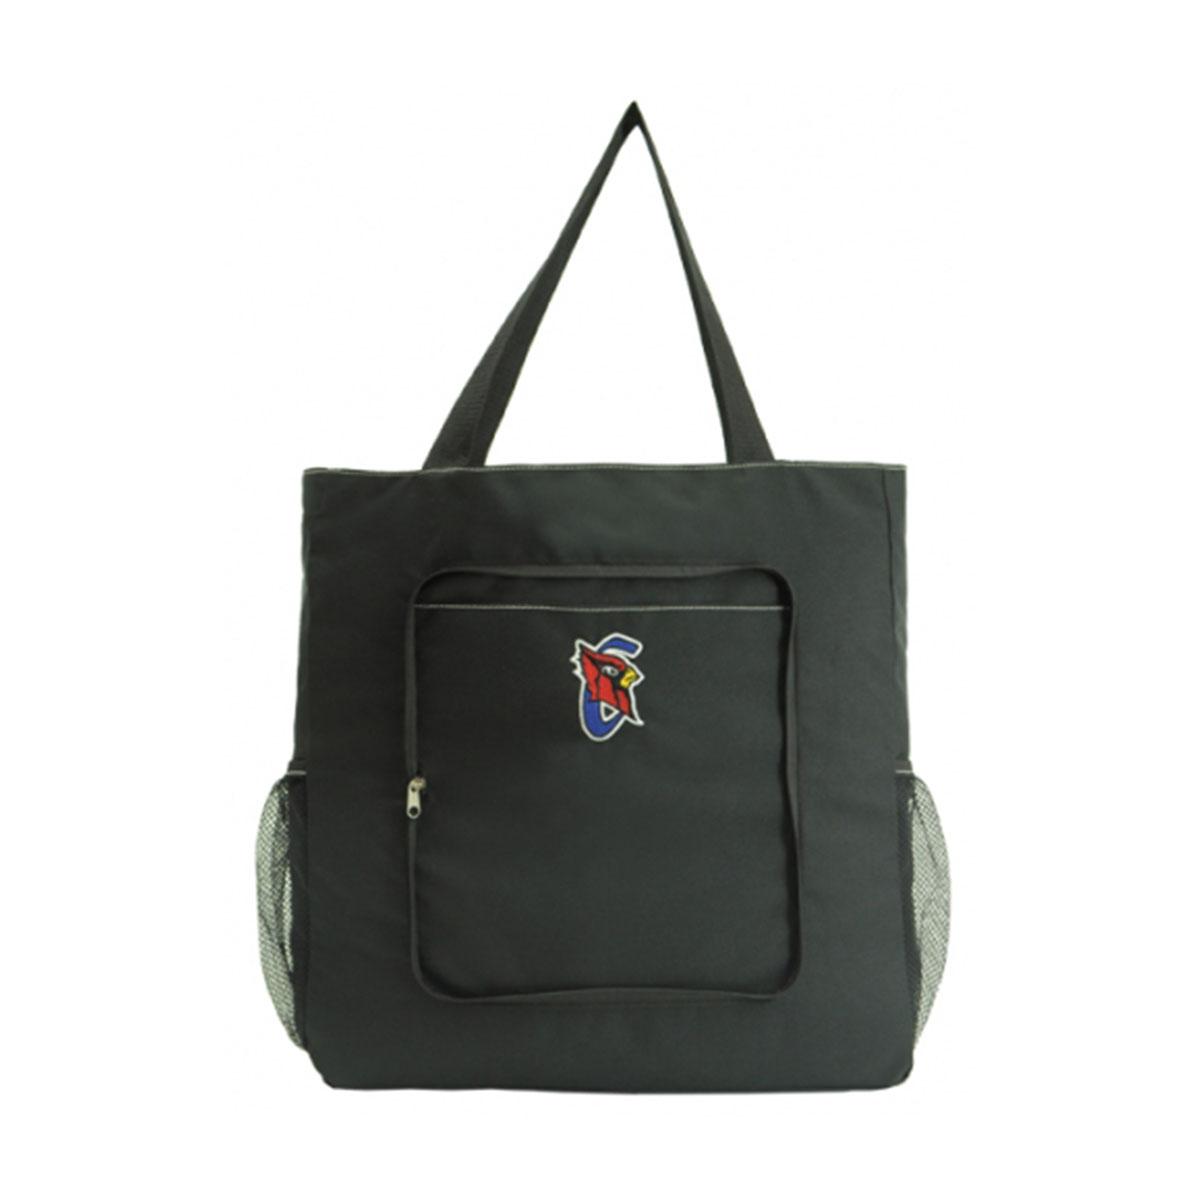 Devon Tote Bag-Black